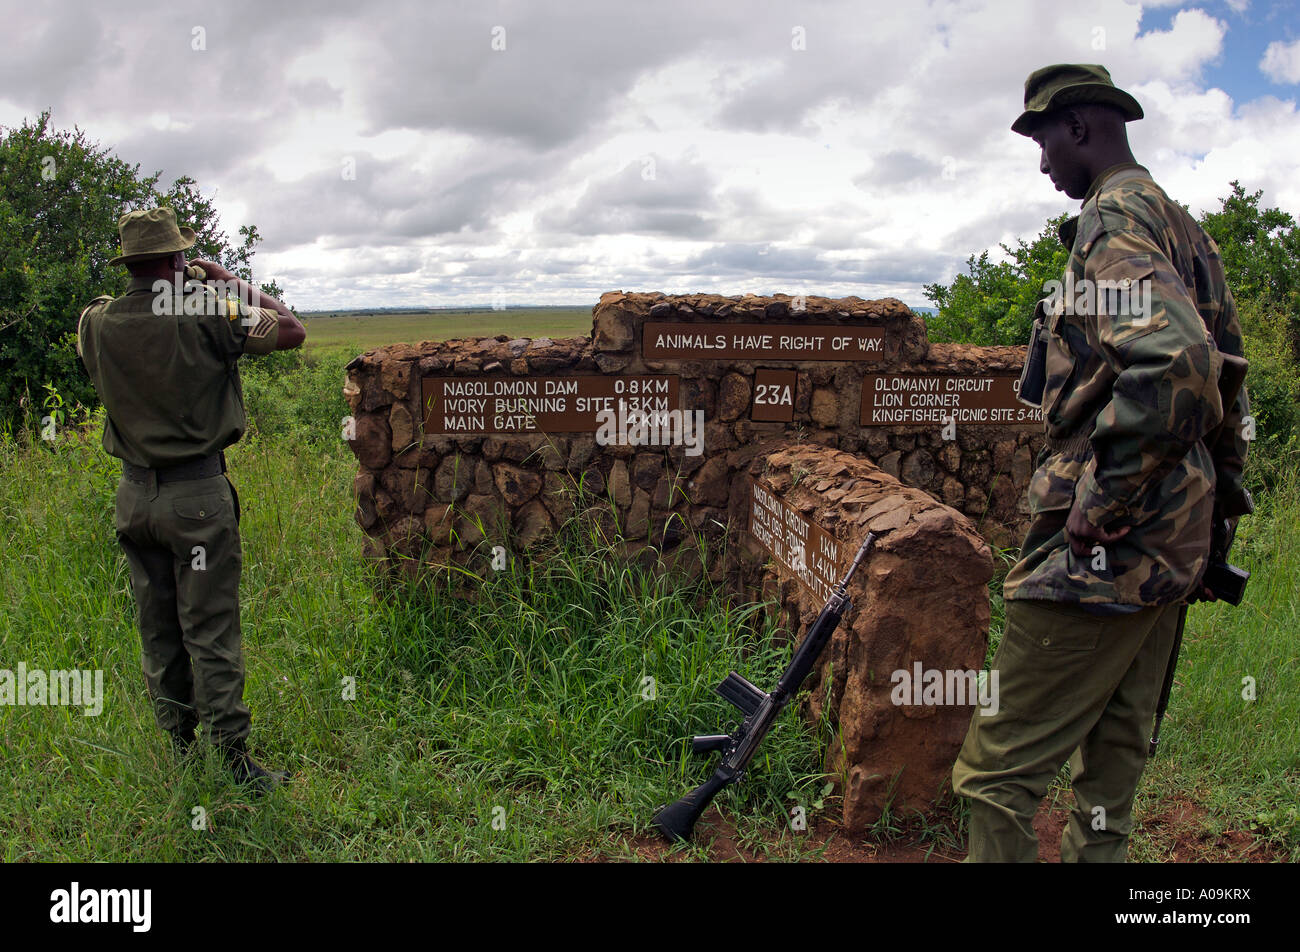 Rangers from the Kenya Wildlife Service (KWS) patrolling Nairobi National  Park for the security